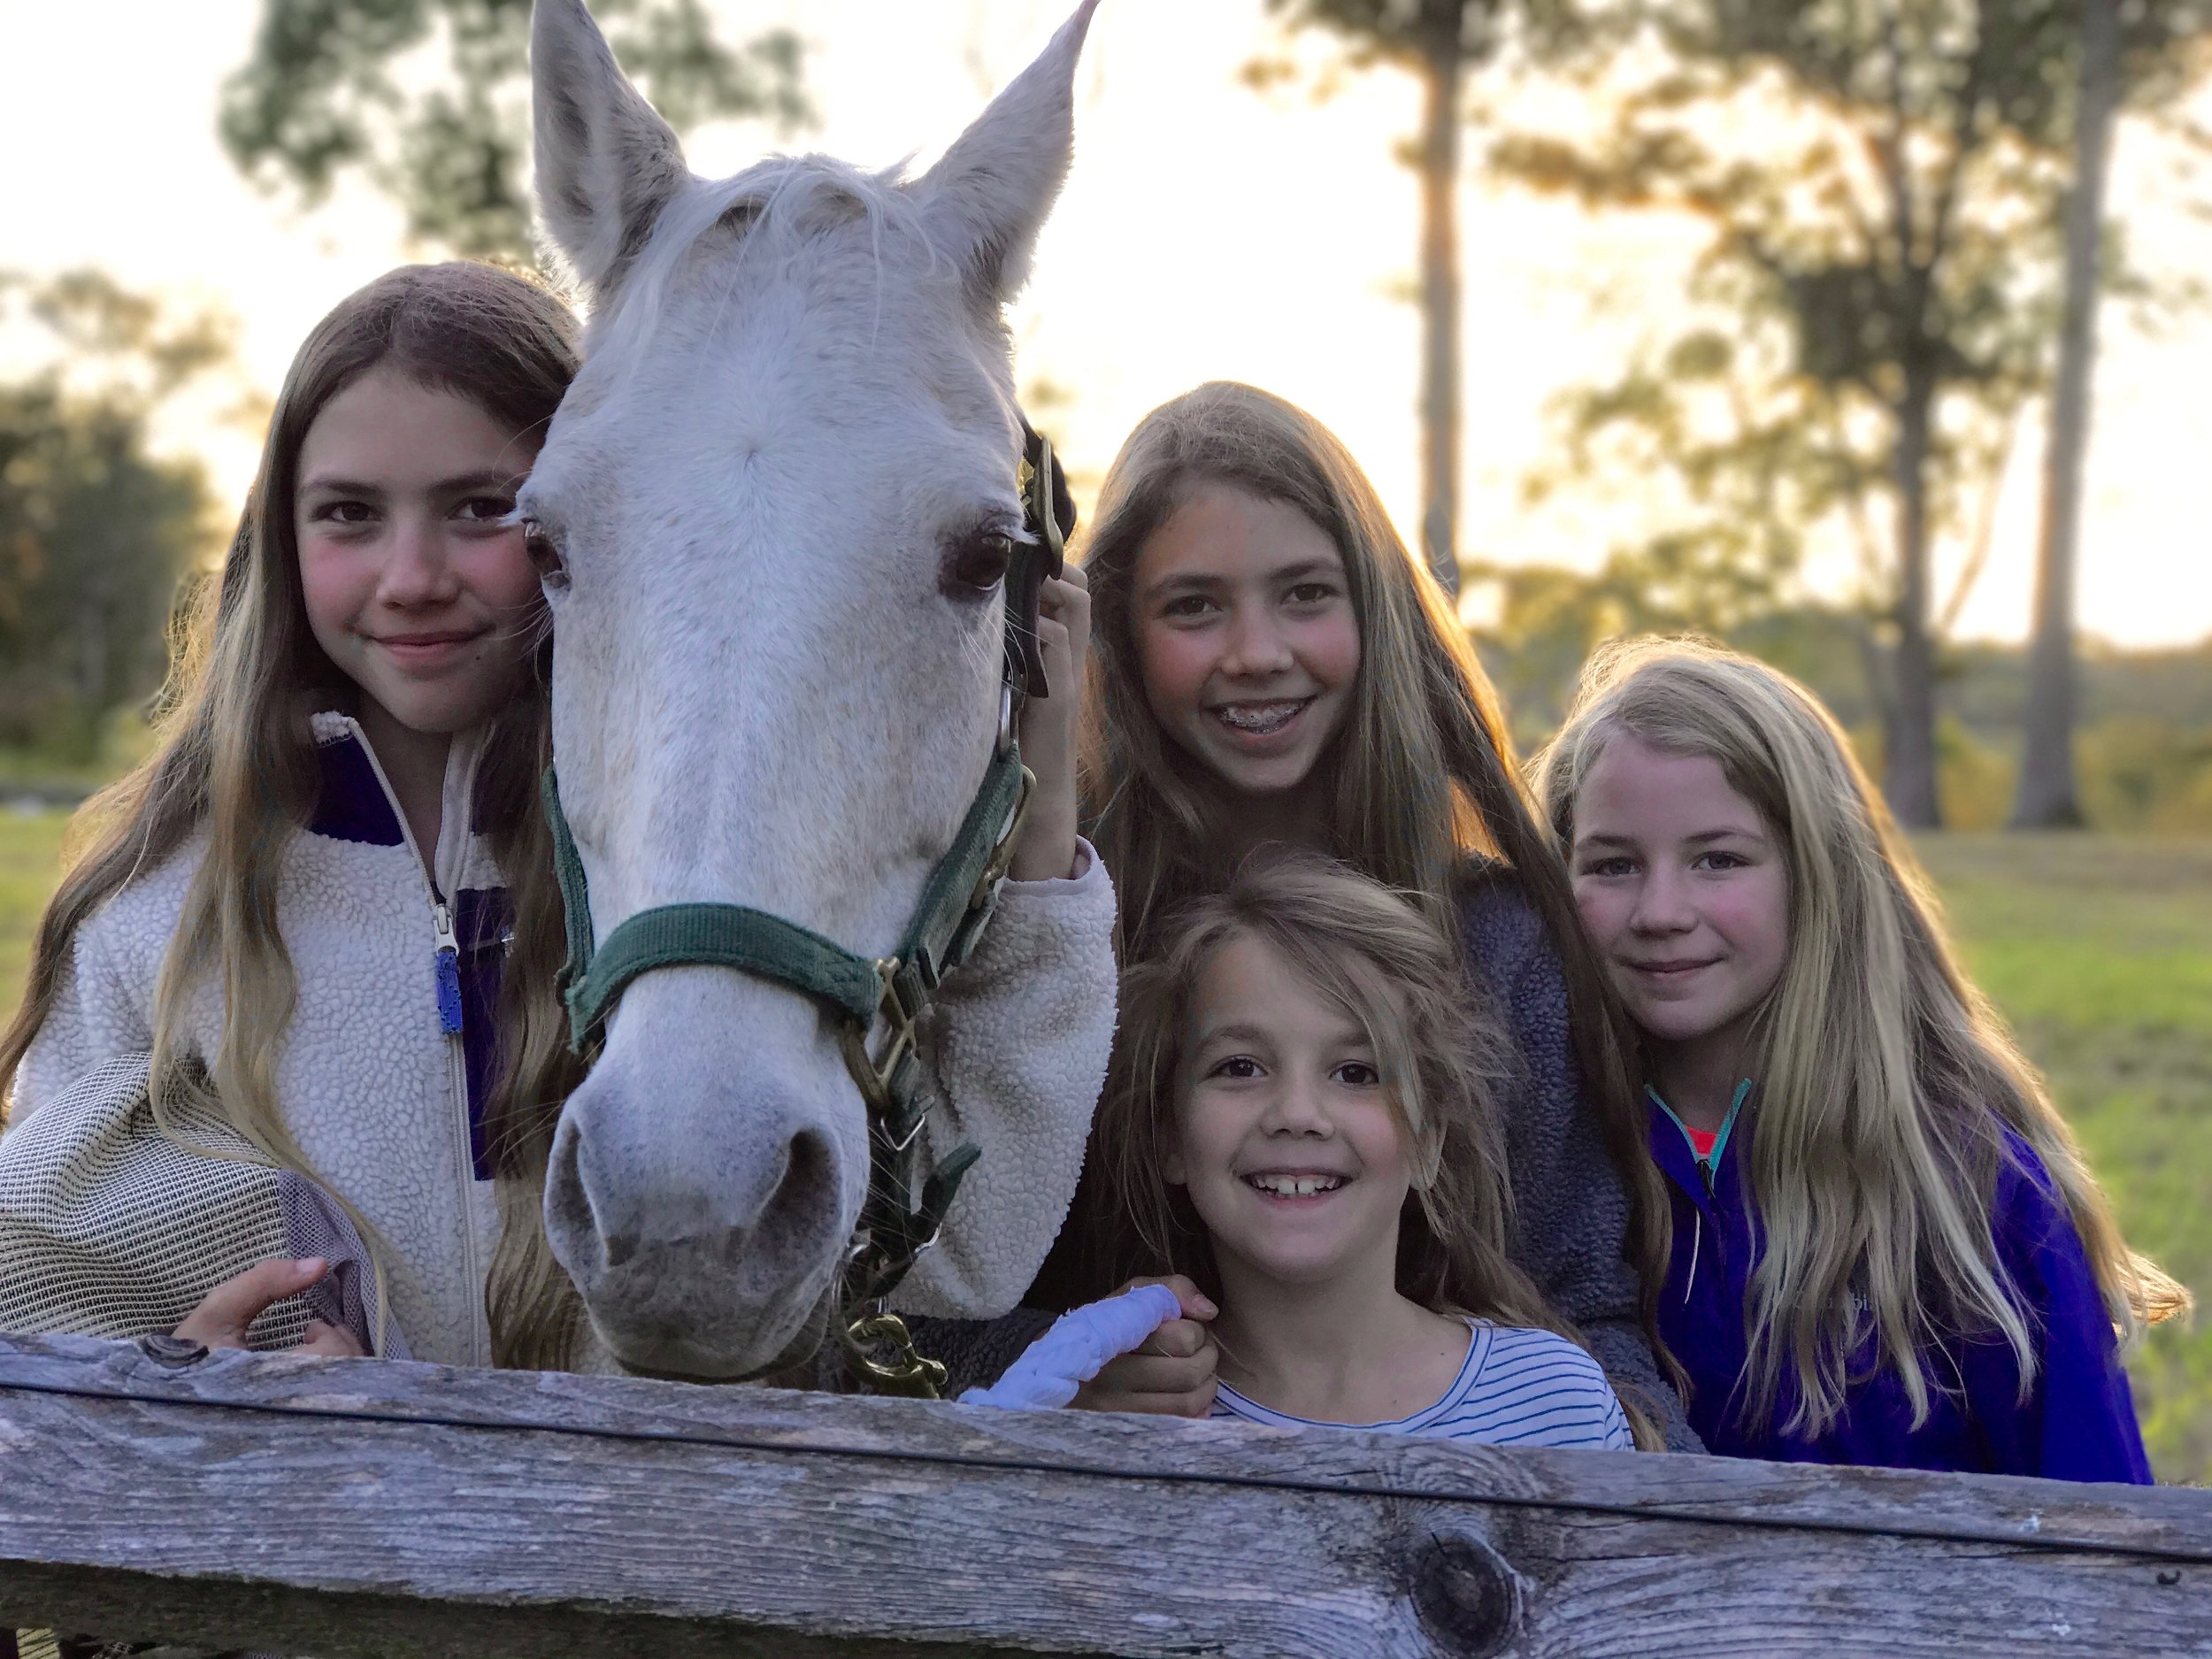 The Borgman daughters love the rural life. From left: Ava, Skittles, Ella, Mae, and Lila.